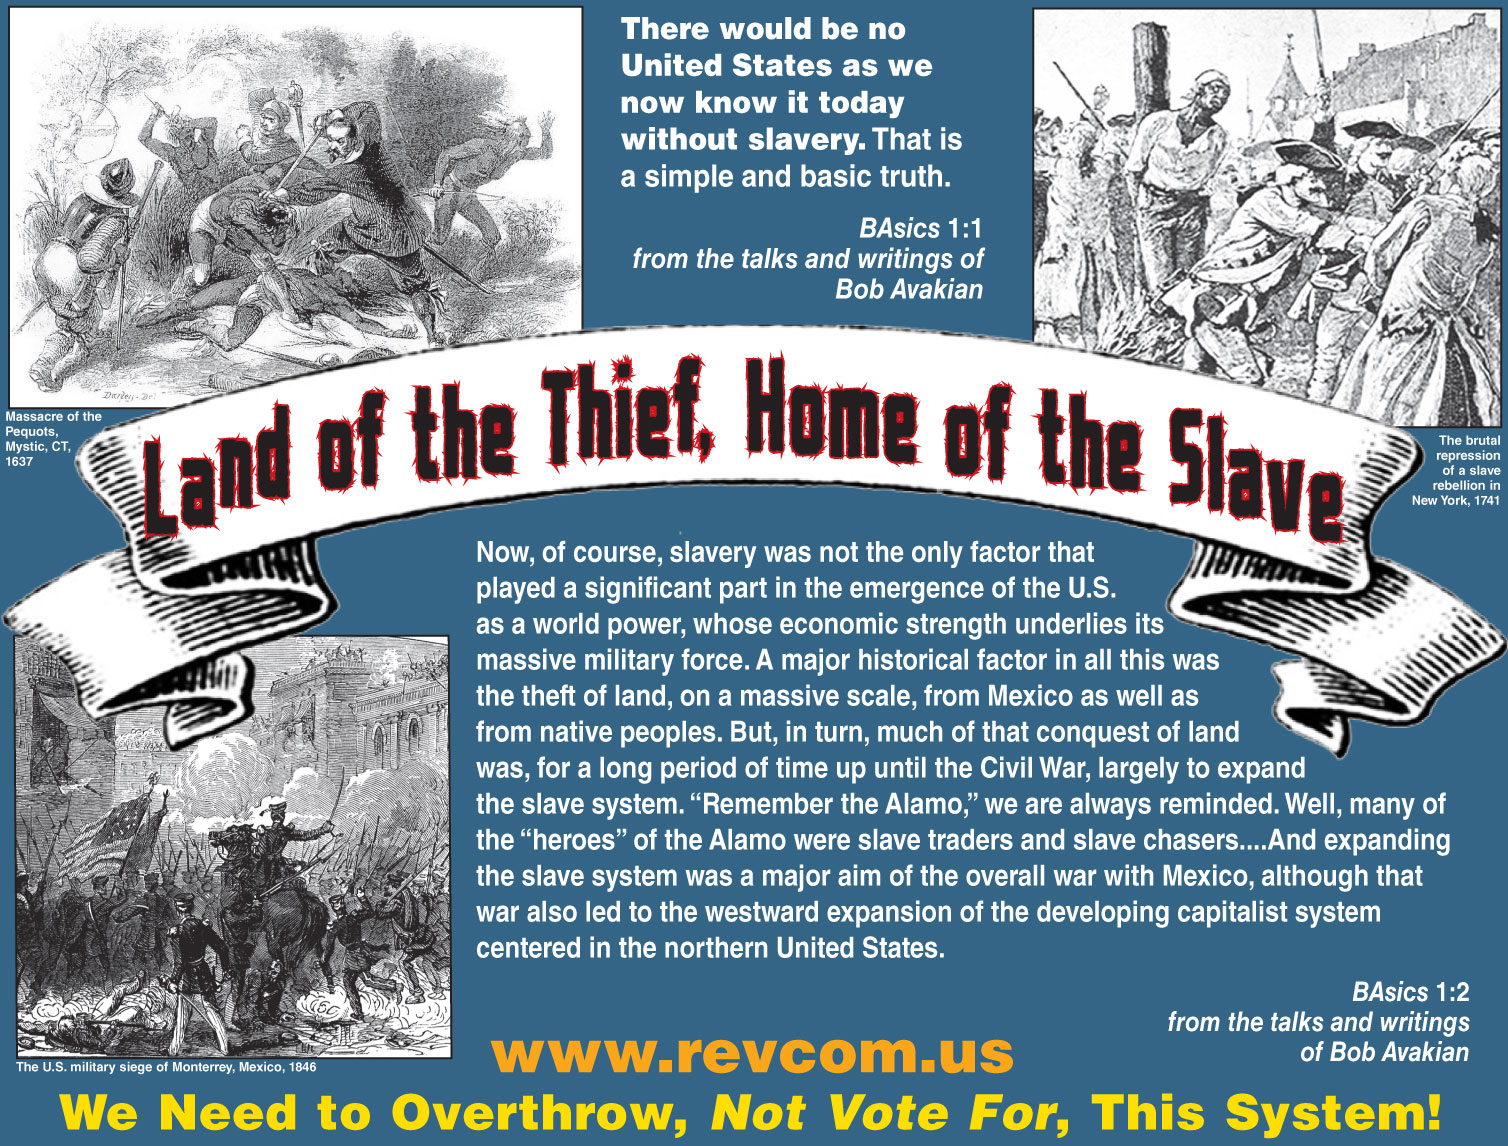 """Get the """"Land of the Thief, Home of the Slave"""" Poster Out"""